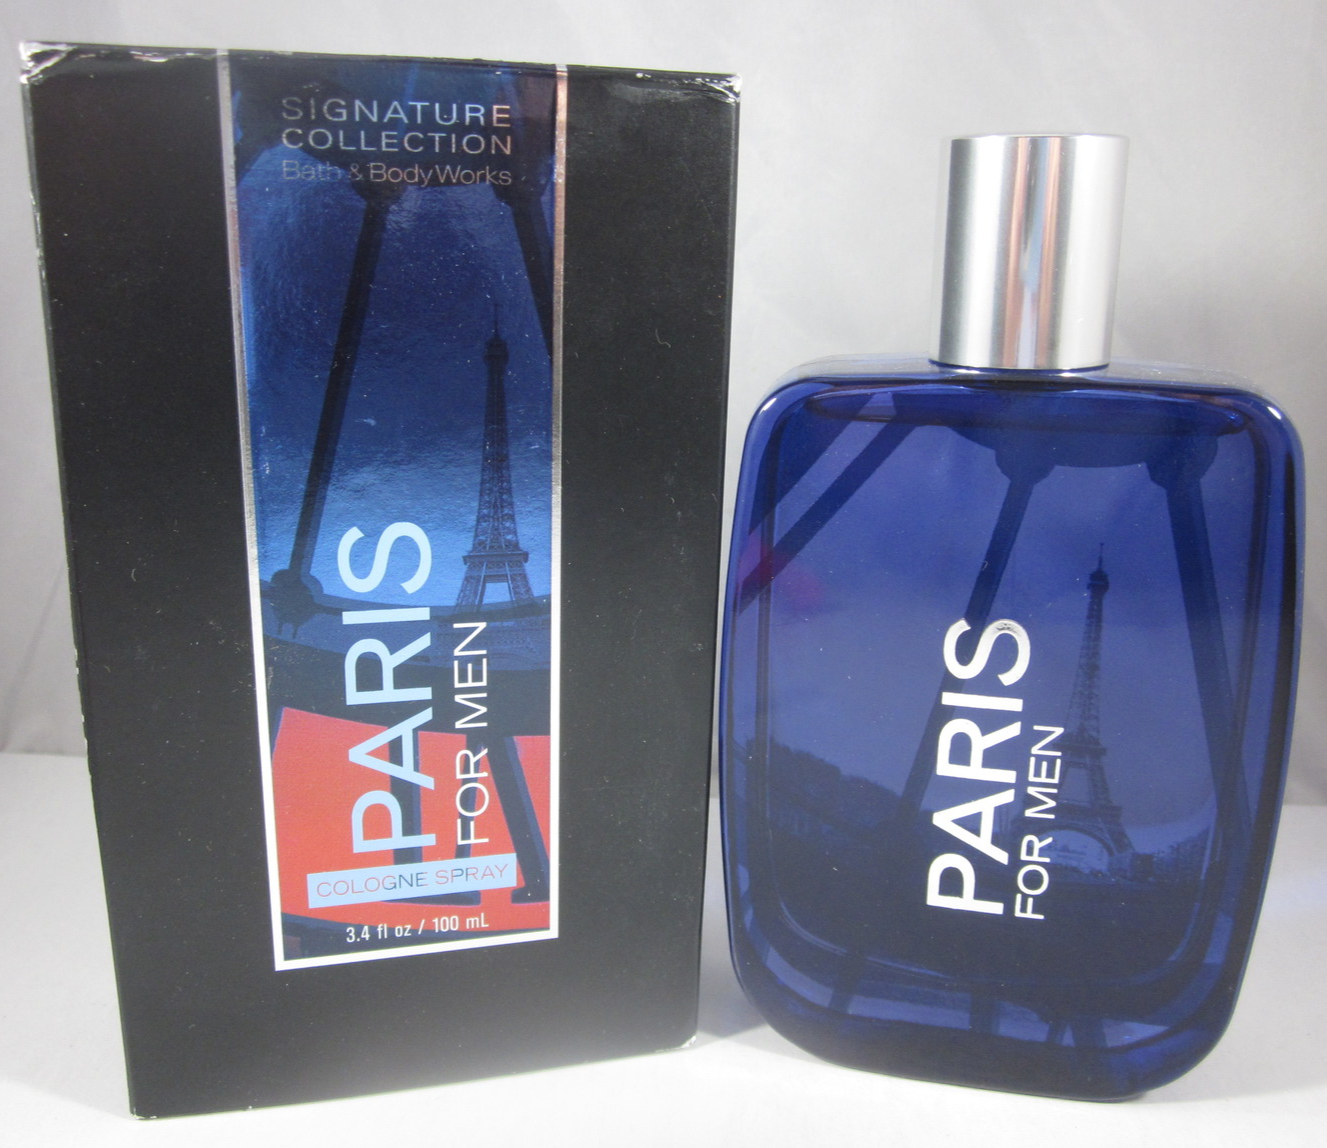 Primary image for Bath & Body Works Cologne Spray 3.4 oz  Paris For Men